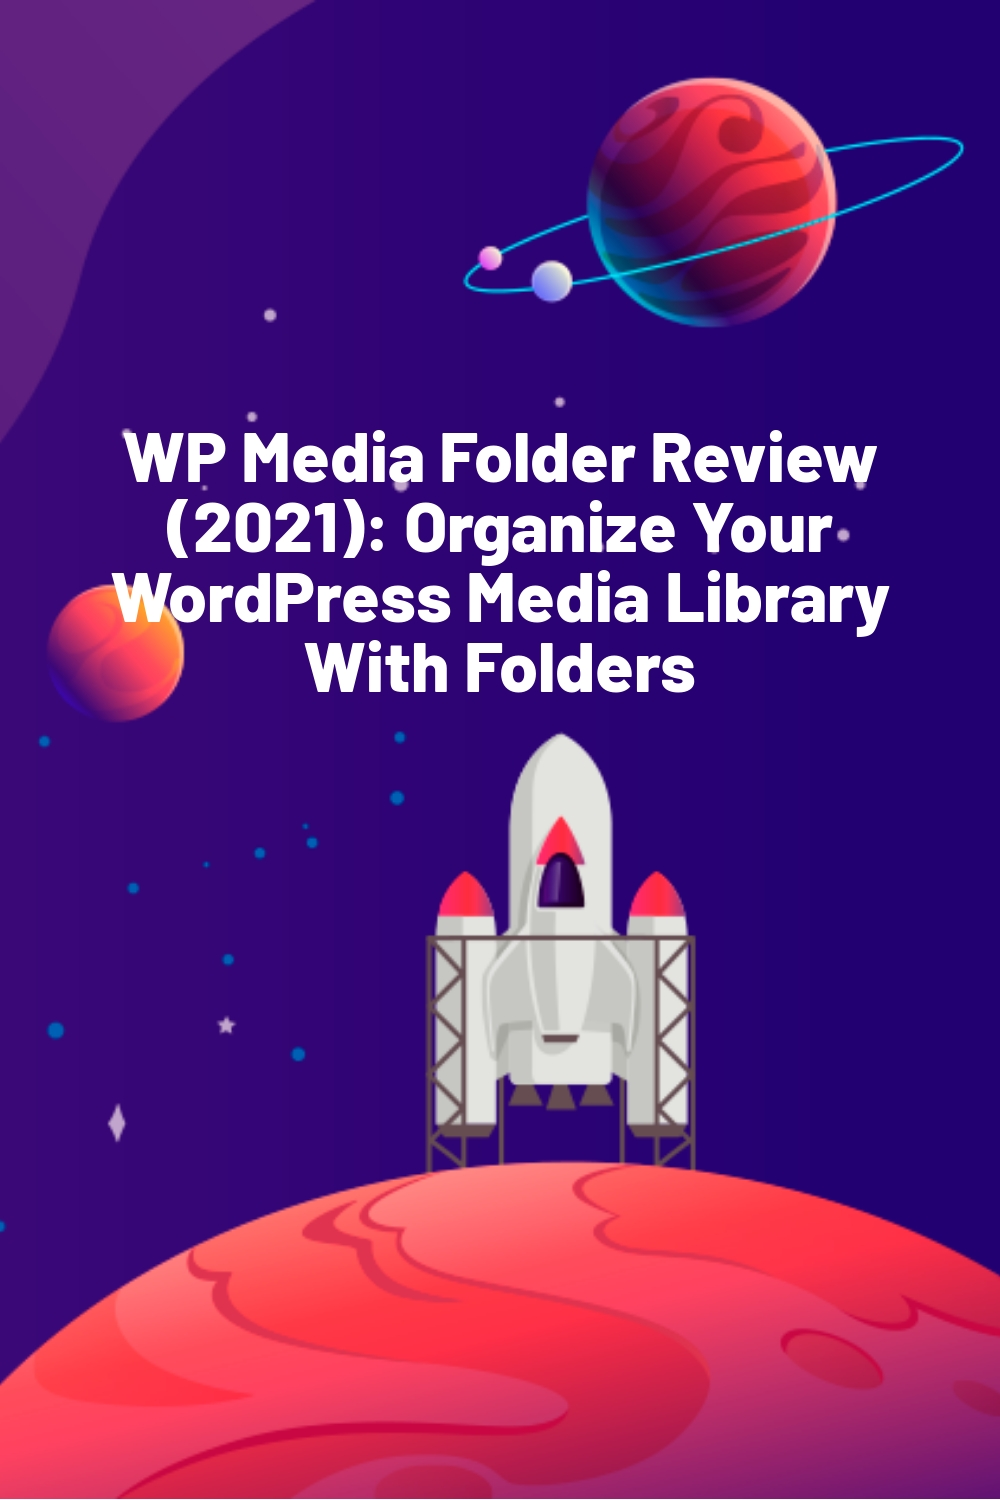 WP Media Folder Review (2021): Organize Your WordPress Media Library With Folders